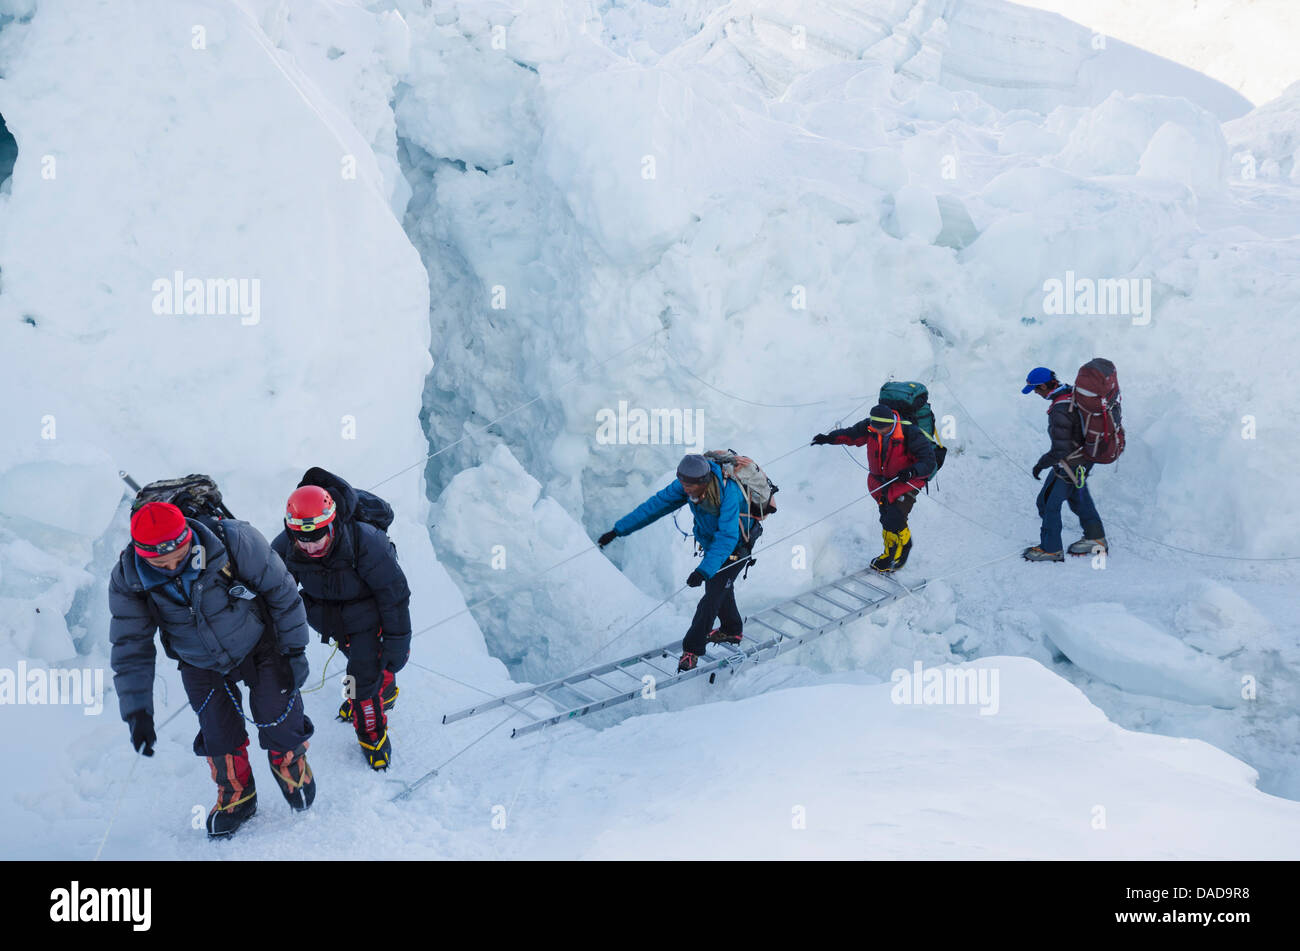 Crossing ladders on the Khumbu icefall on Mount Everest, Solu Khumbu, Sagarmatha National Park, UNESCO Site, Nepal - Stock Image